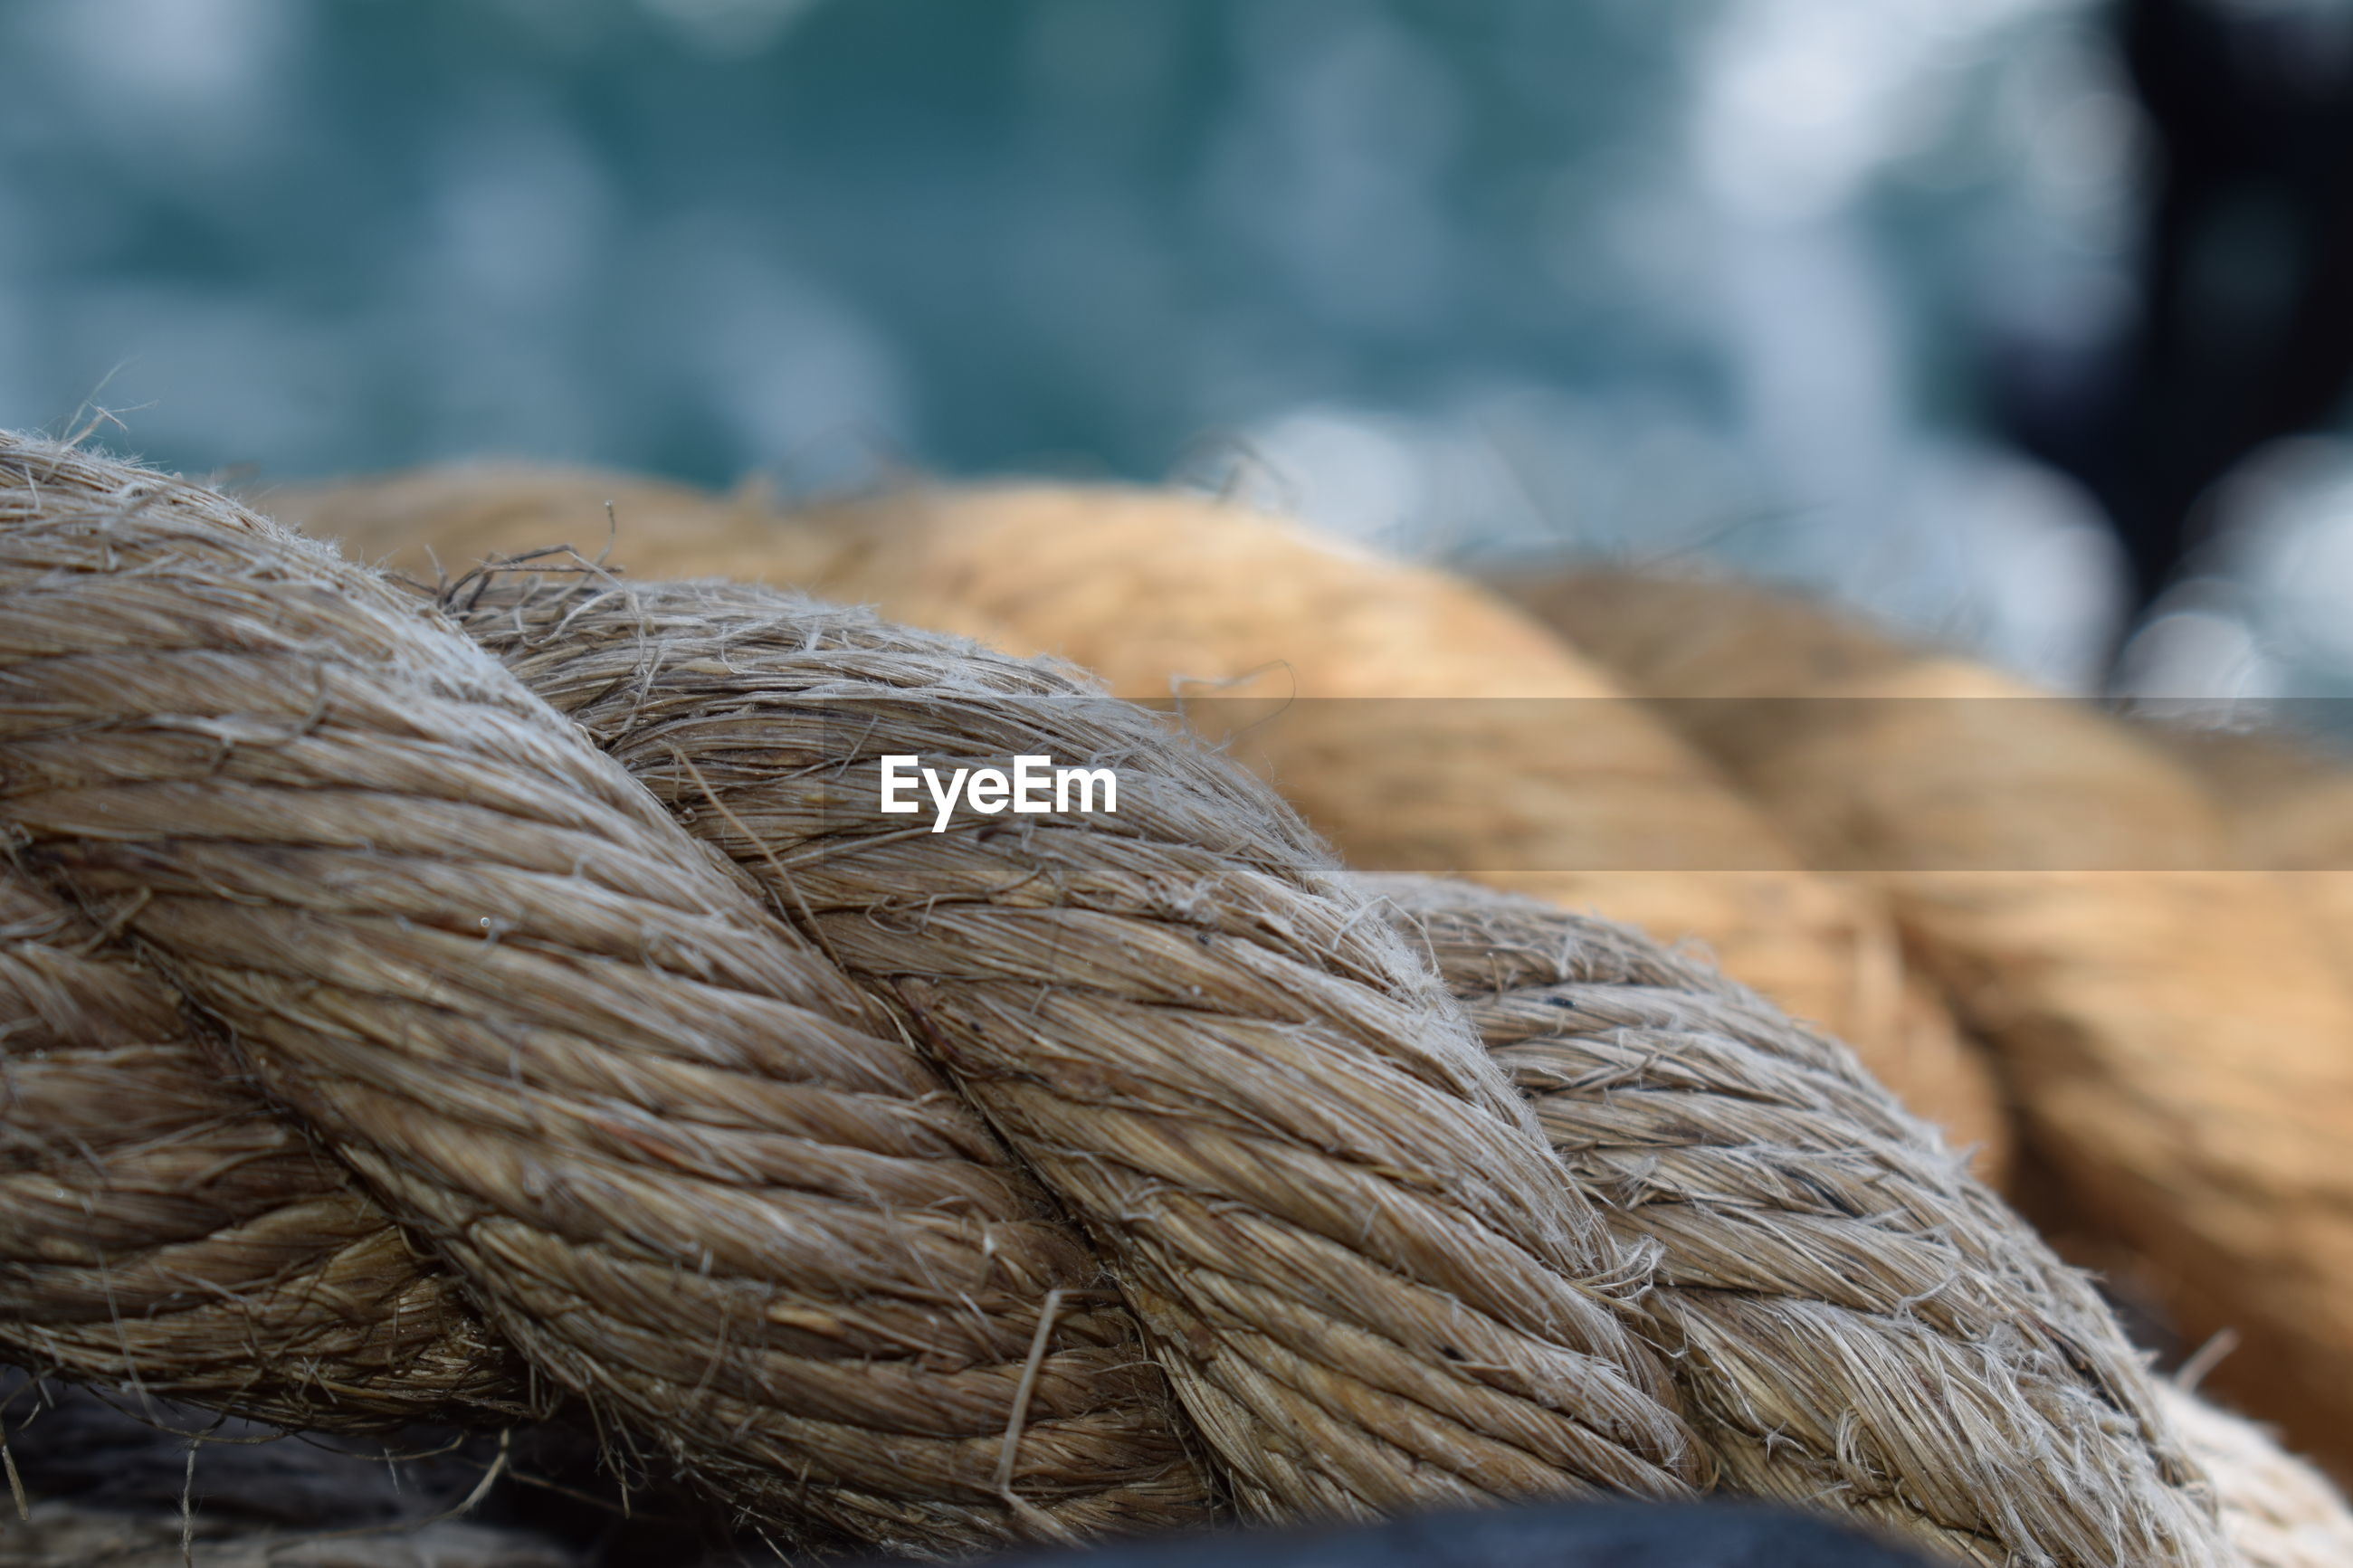 CLOSE-UP OF A BIRD ON ROPE